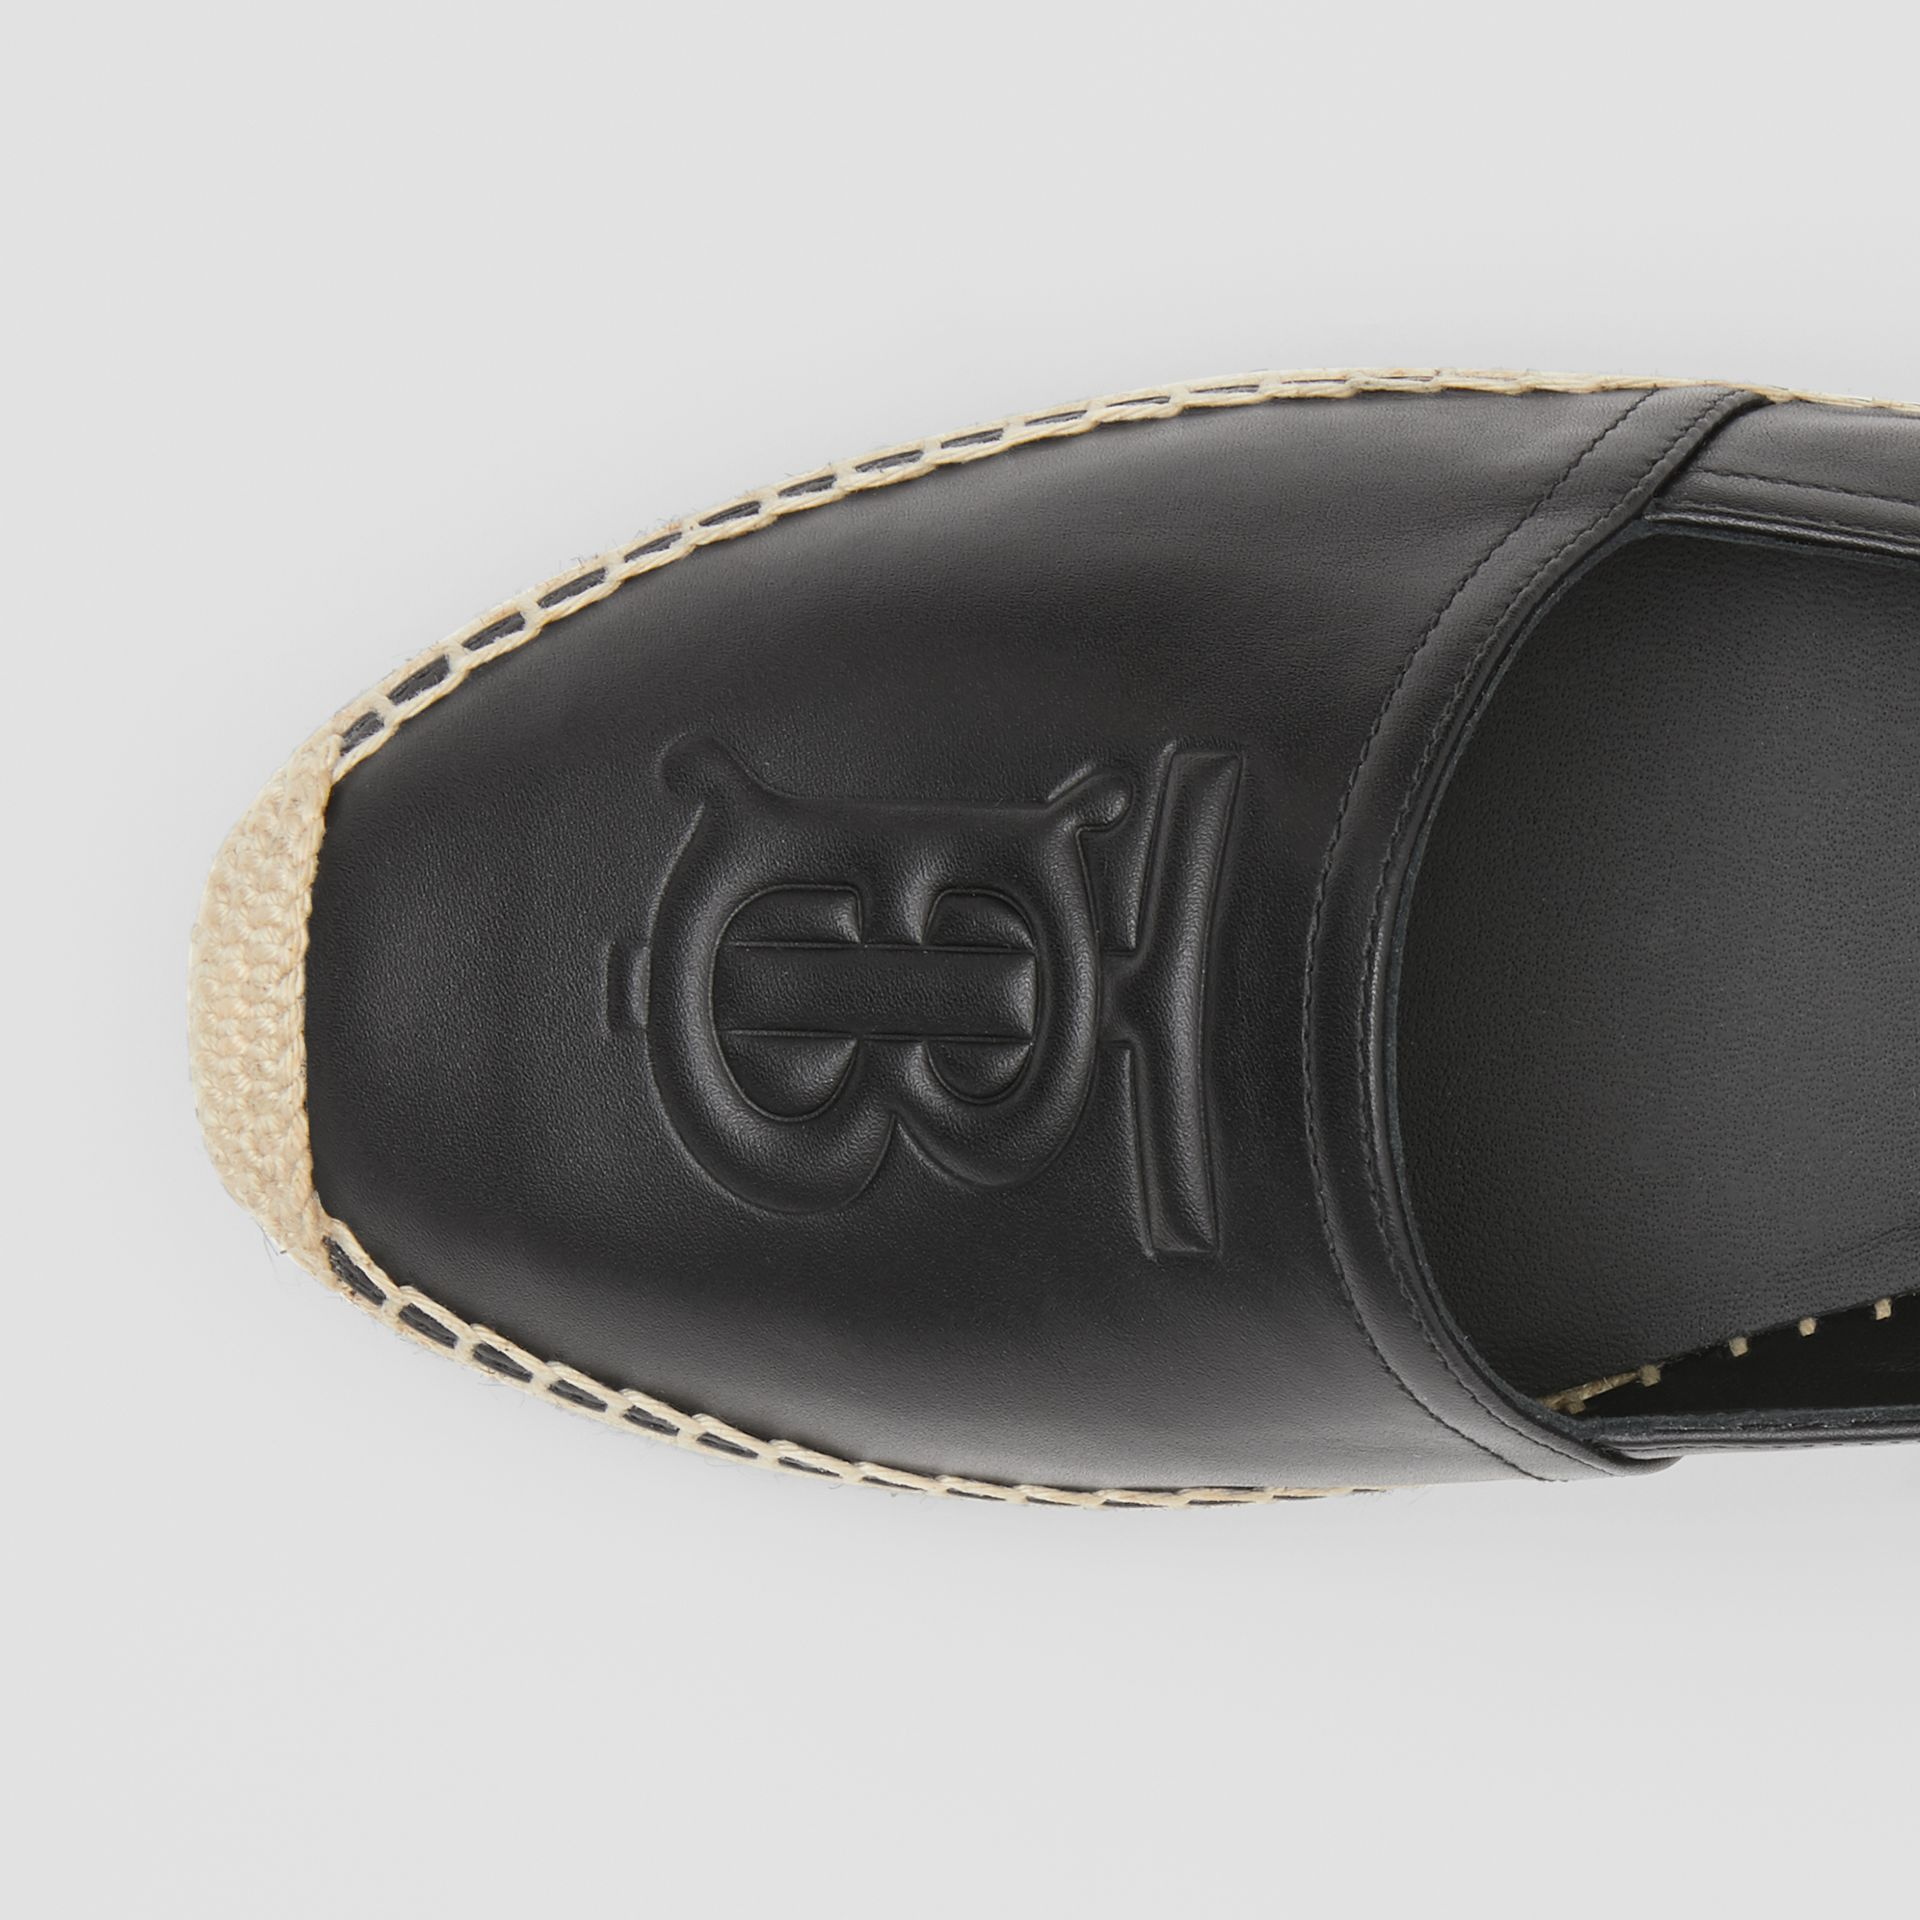 Monogram Motif Leather Espadrilles in Black - Women | Burberry United Kingdom - gallery image 1